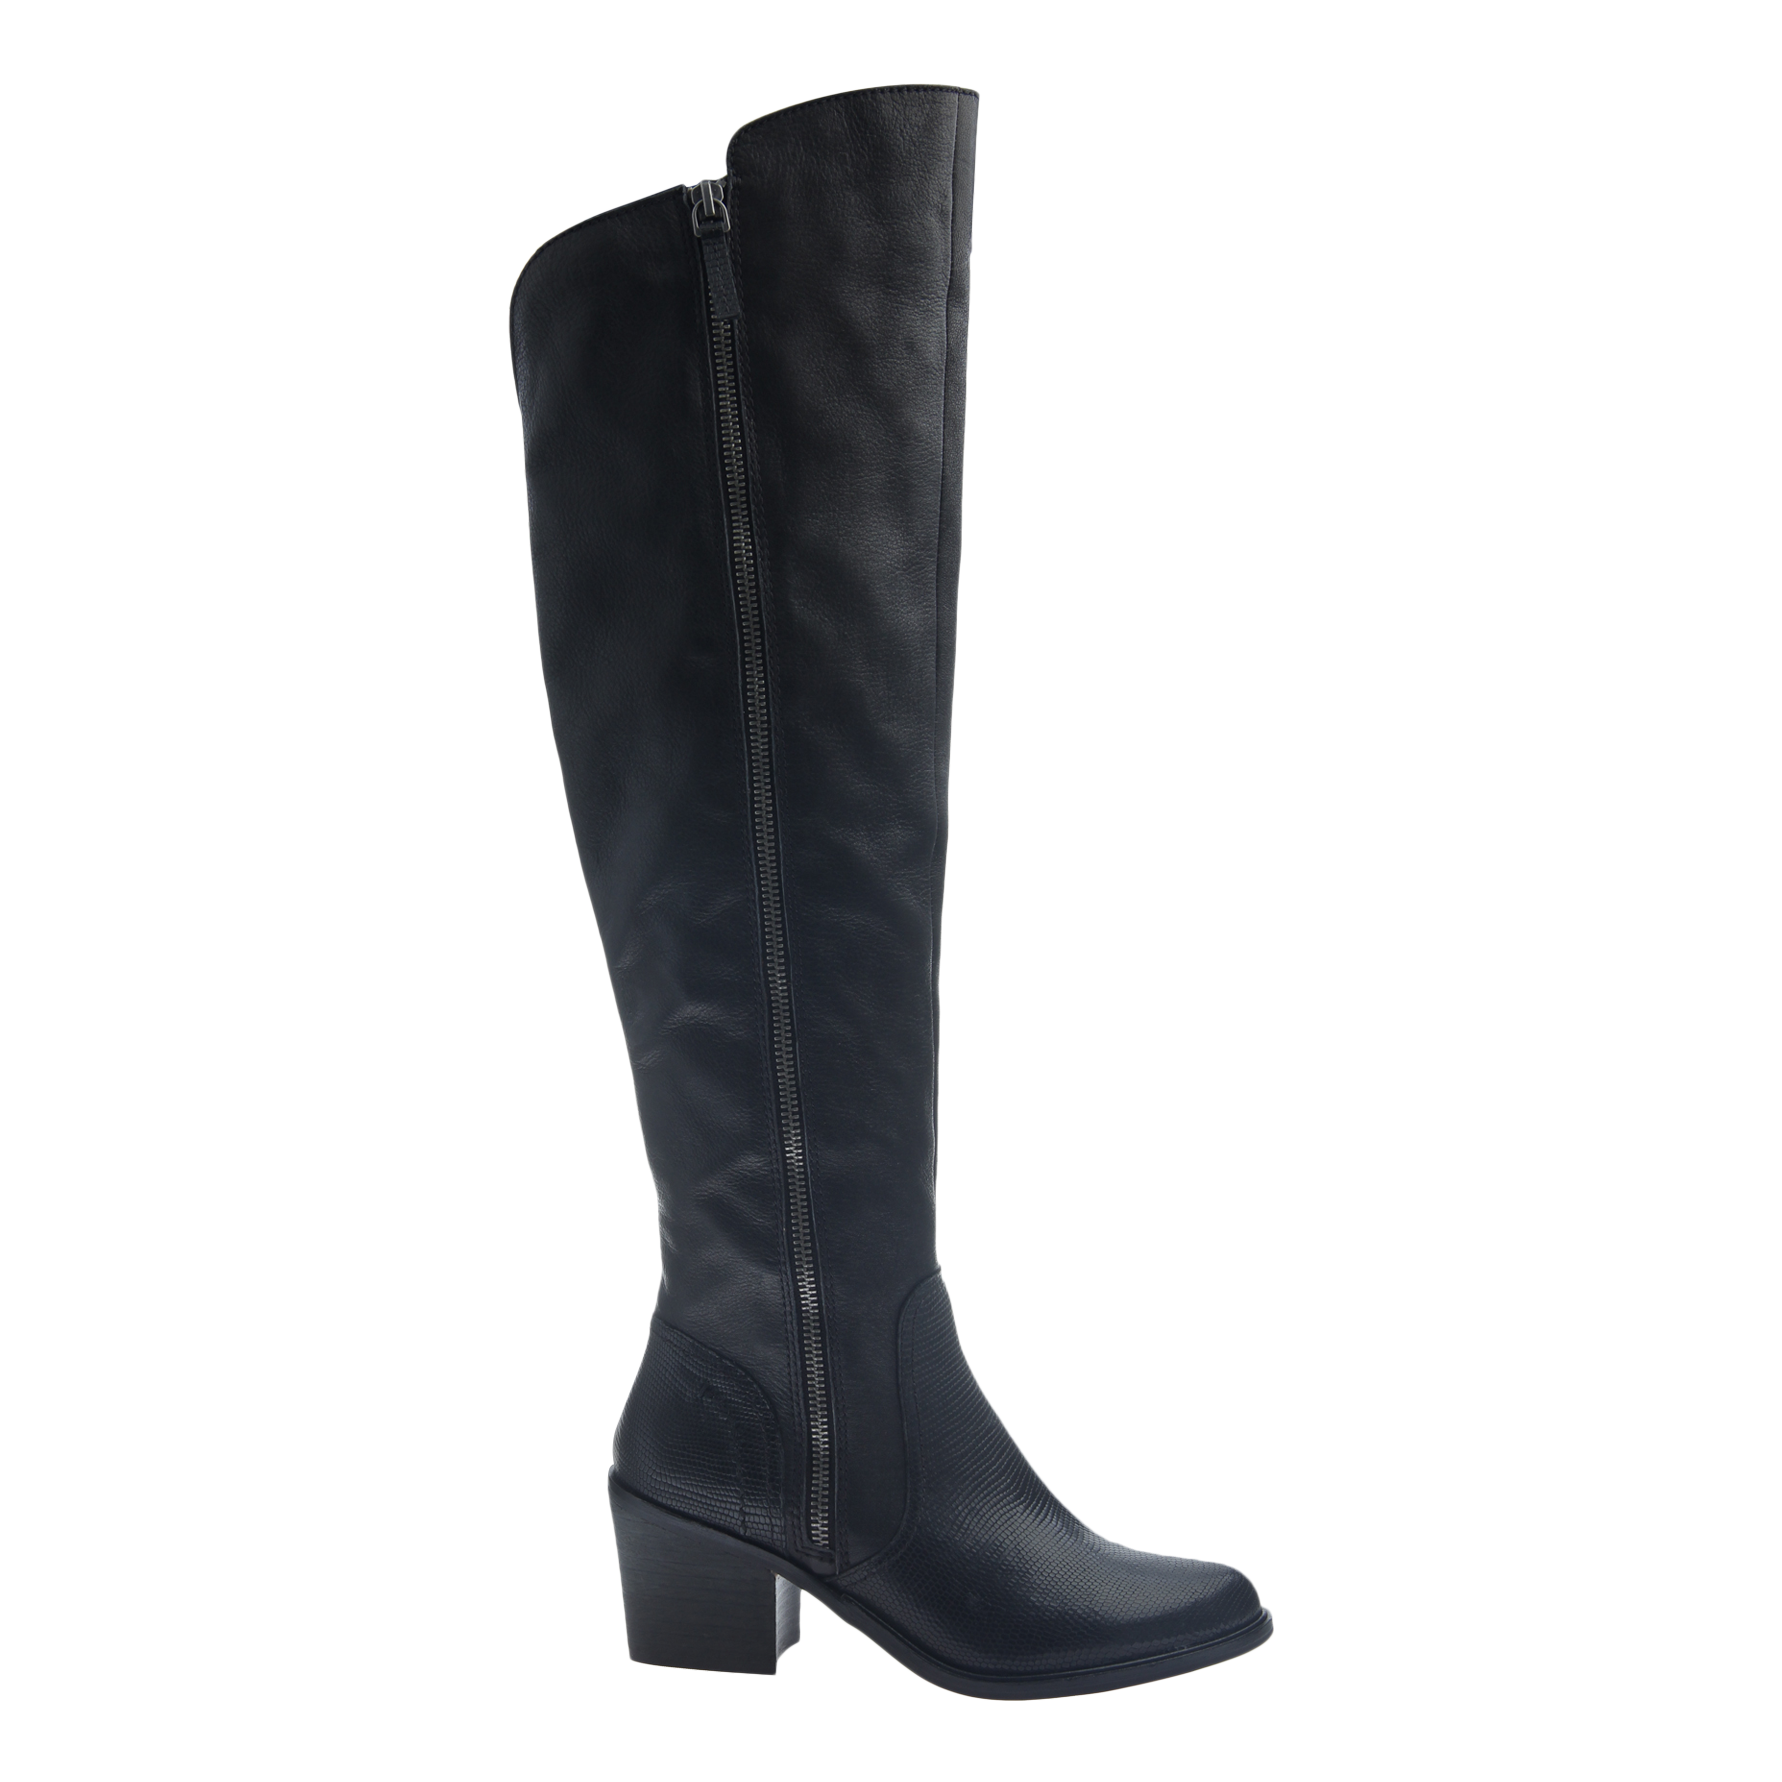 Womens tall over the knee boot Clooney in black  side view